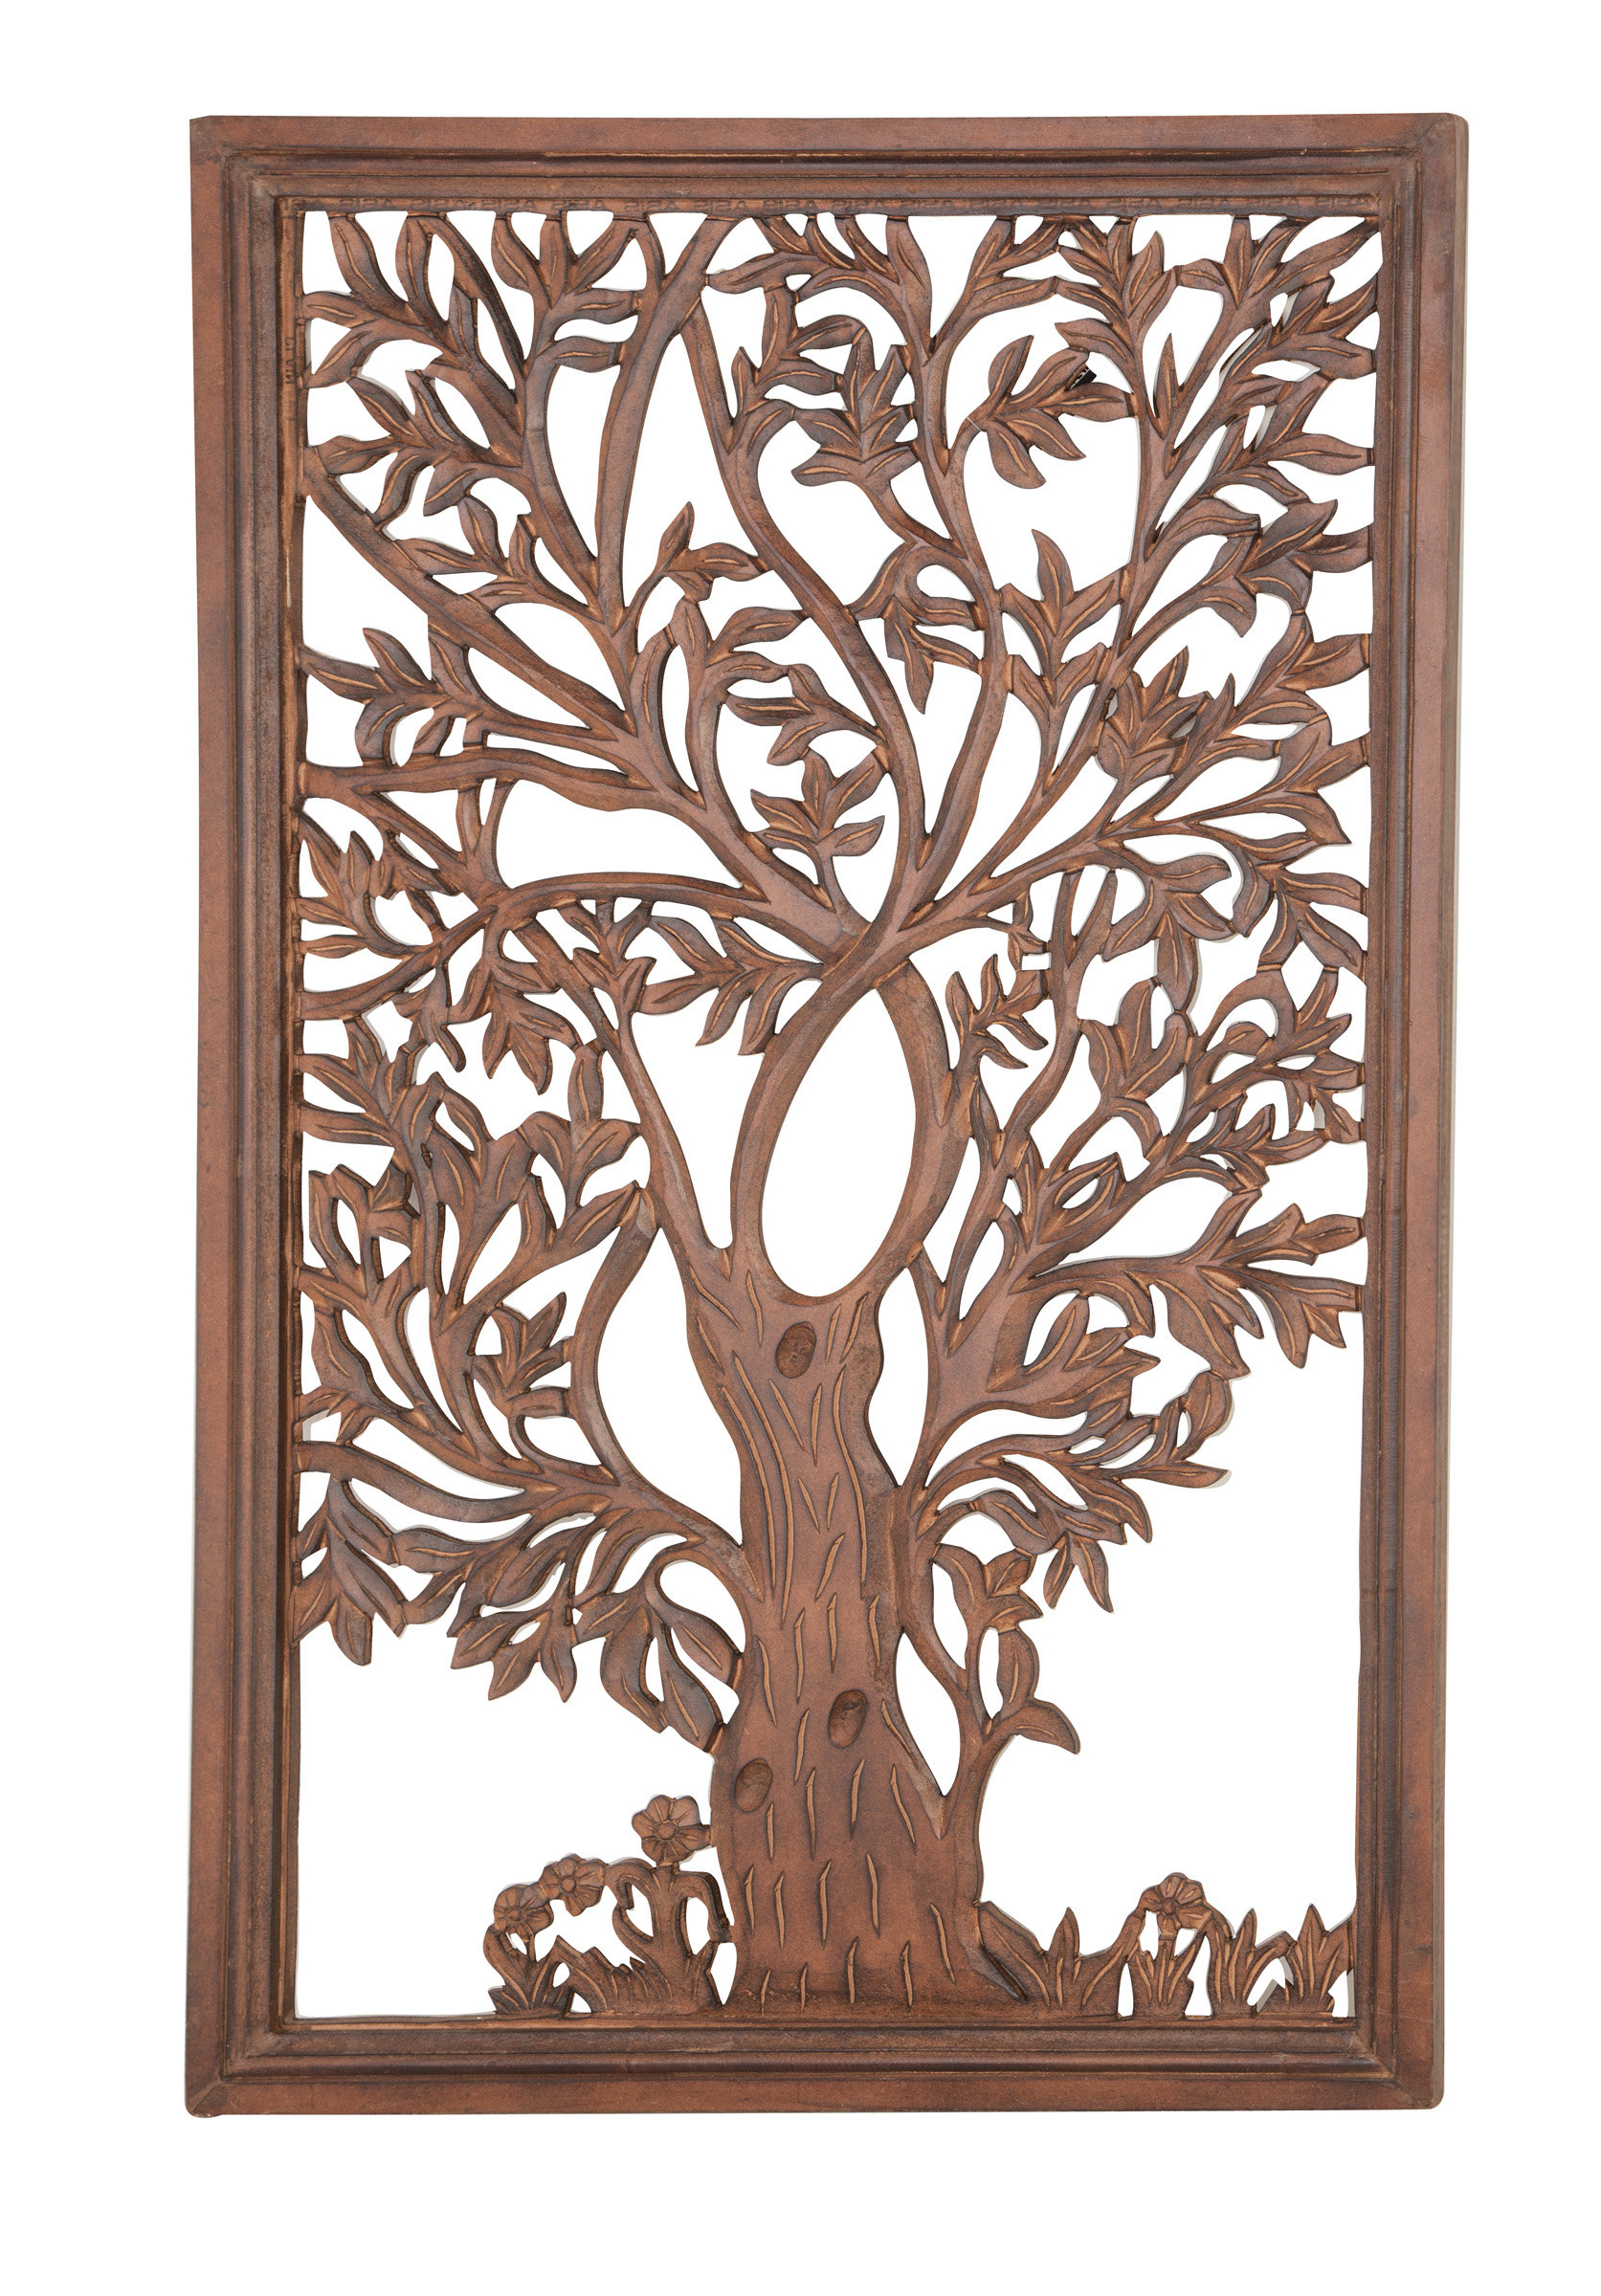 Tree Of Life Wall Decor By Red Barrel Studio In Well Liked Red Barrel Studio Rectangular Wood Carved Tree Wall Decor (View 14 of 20)